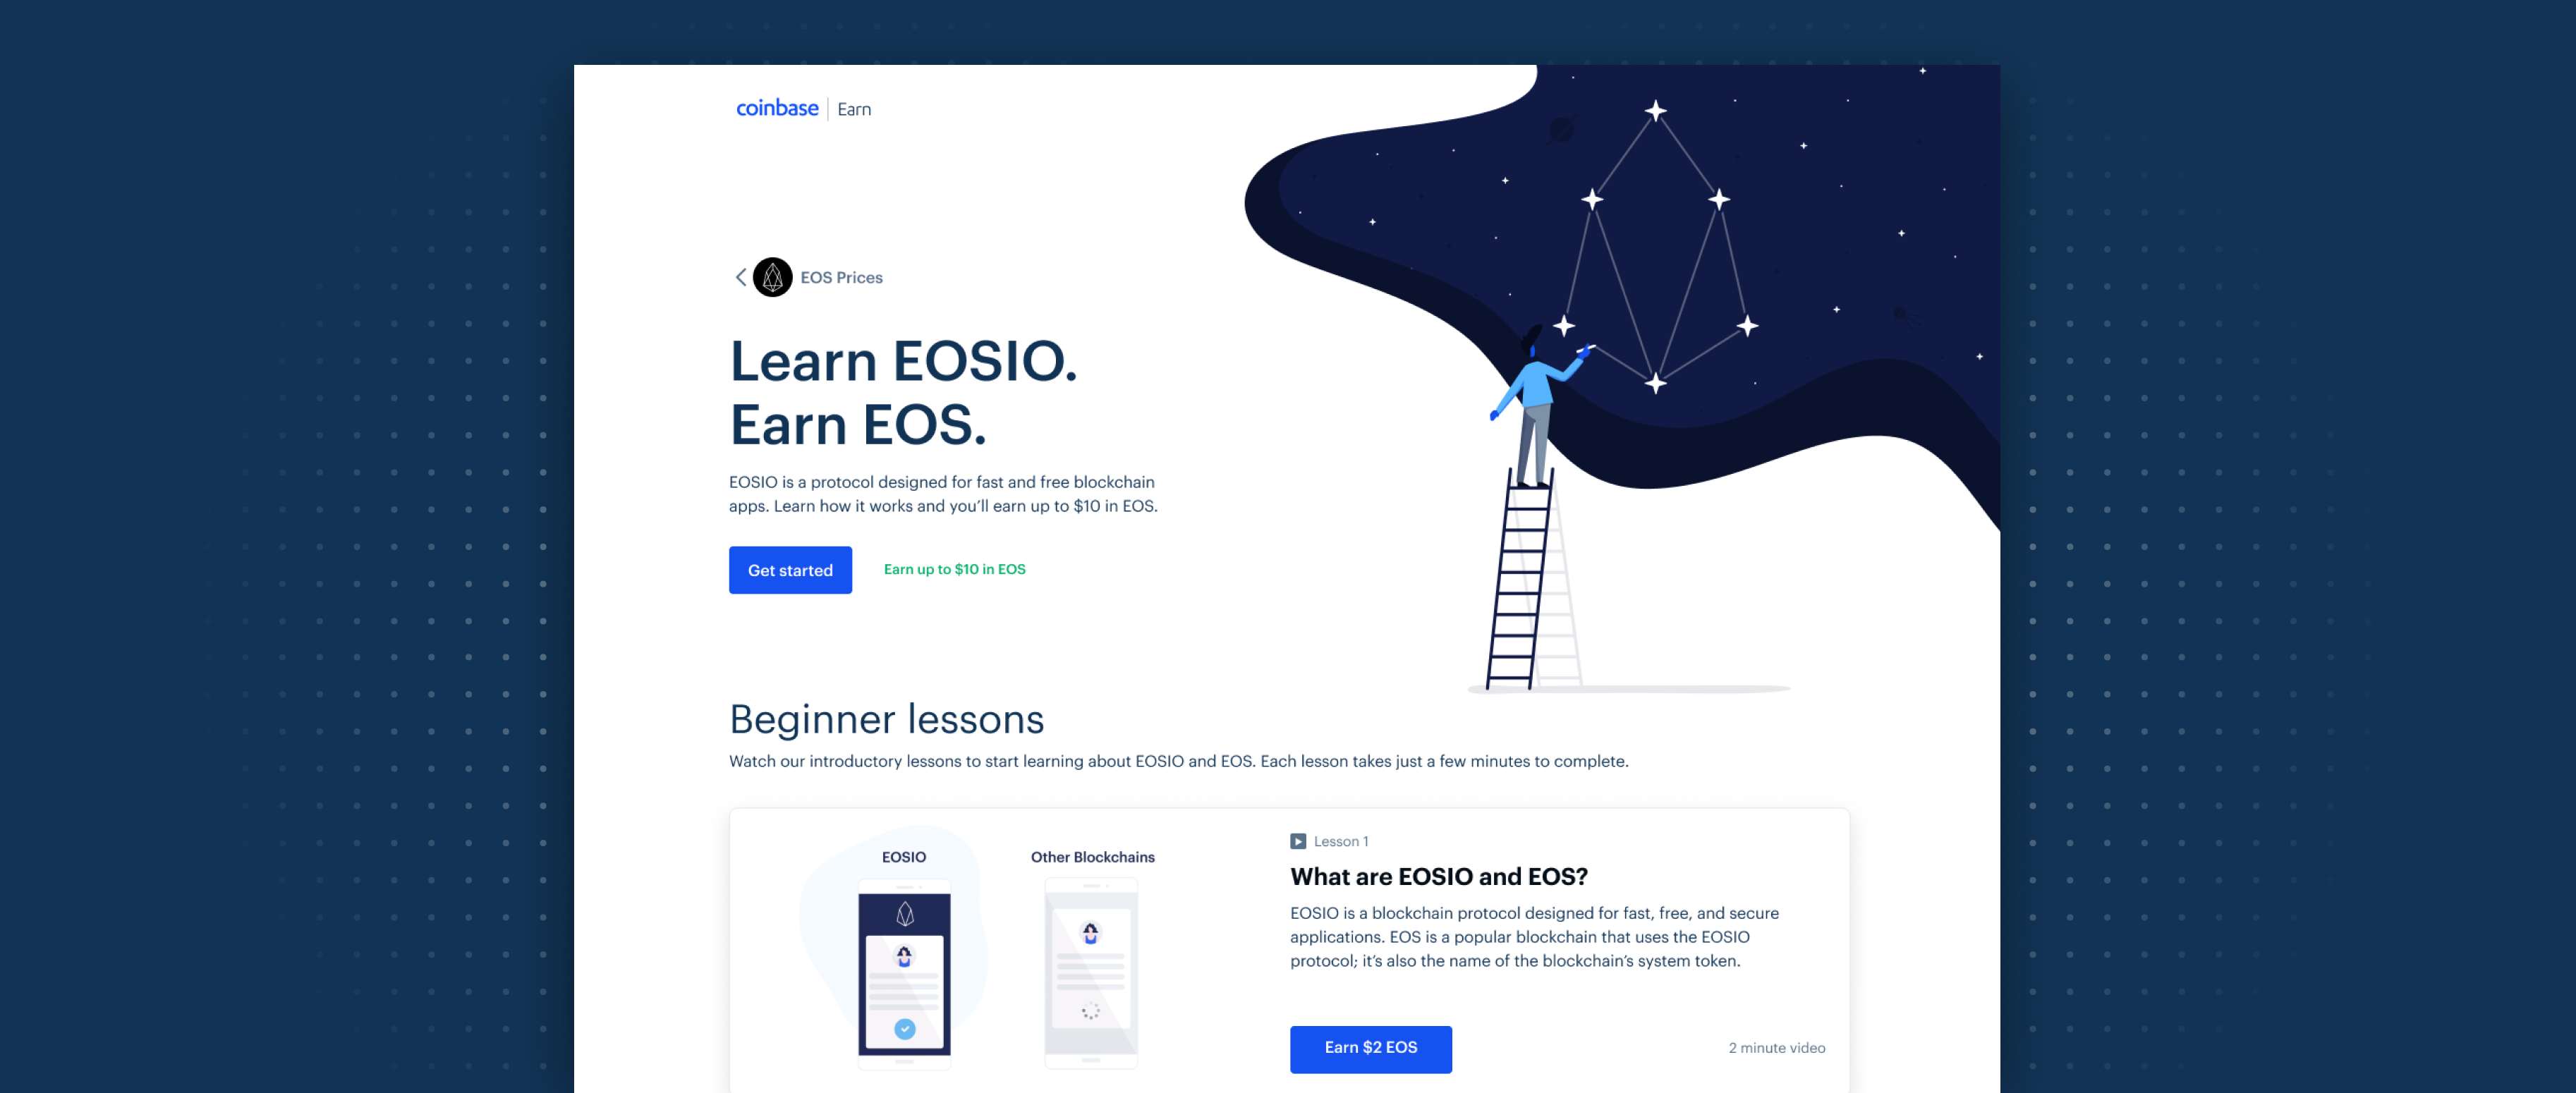 Earn EOS while learning about the EOSIO protocol and EOS